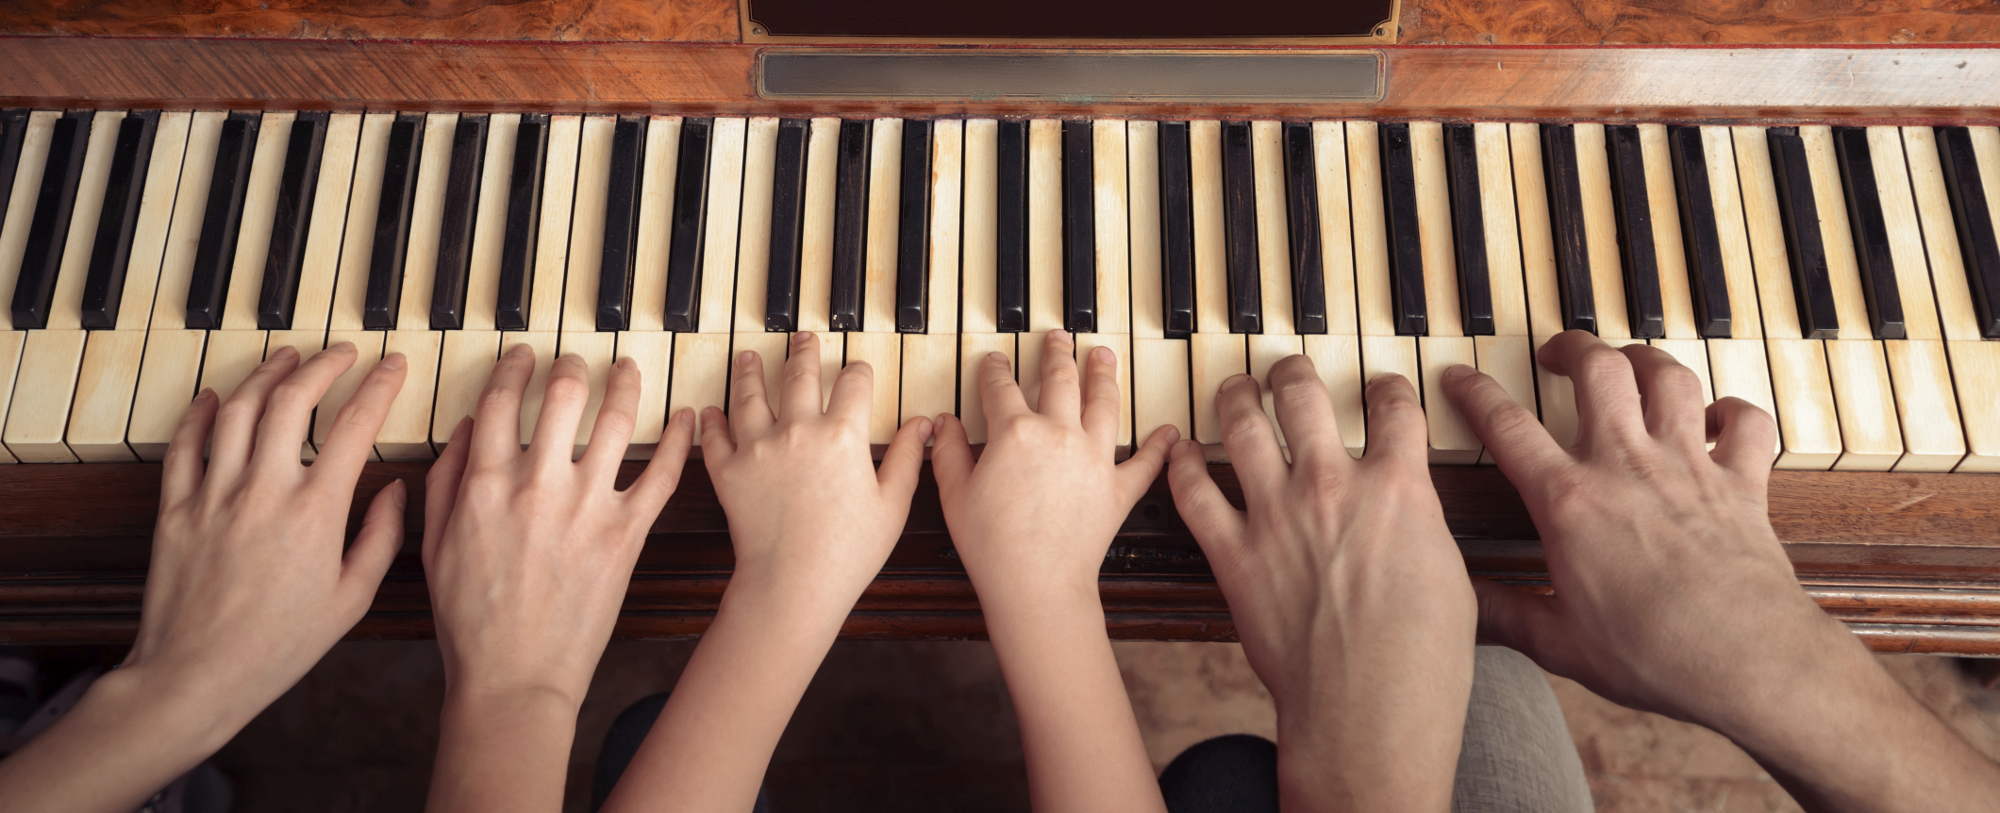 Hands of different ages playing a piano